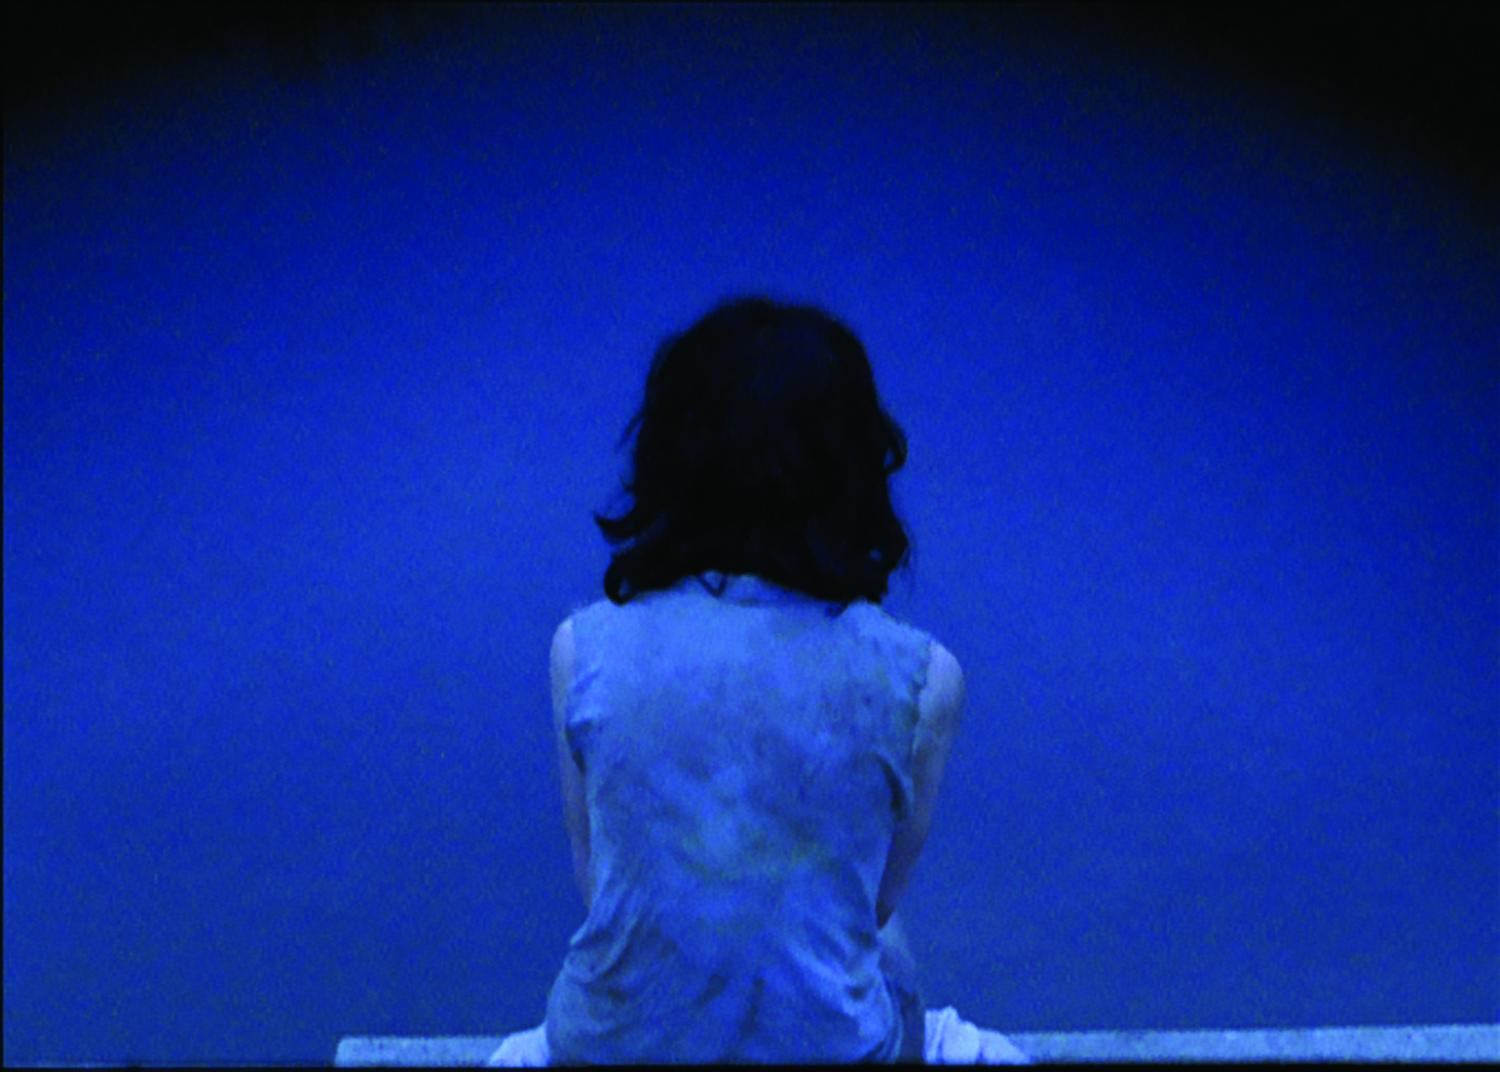 A deep blue–toned photo shows a person with shoulder-length black hair sitting with their back to the viewer.